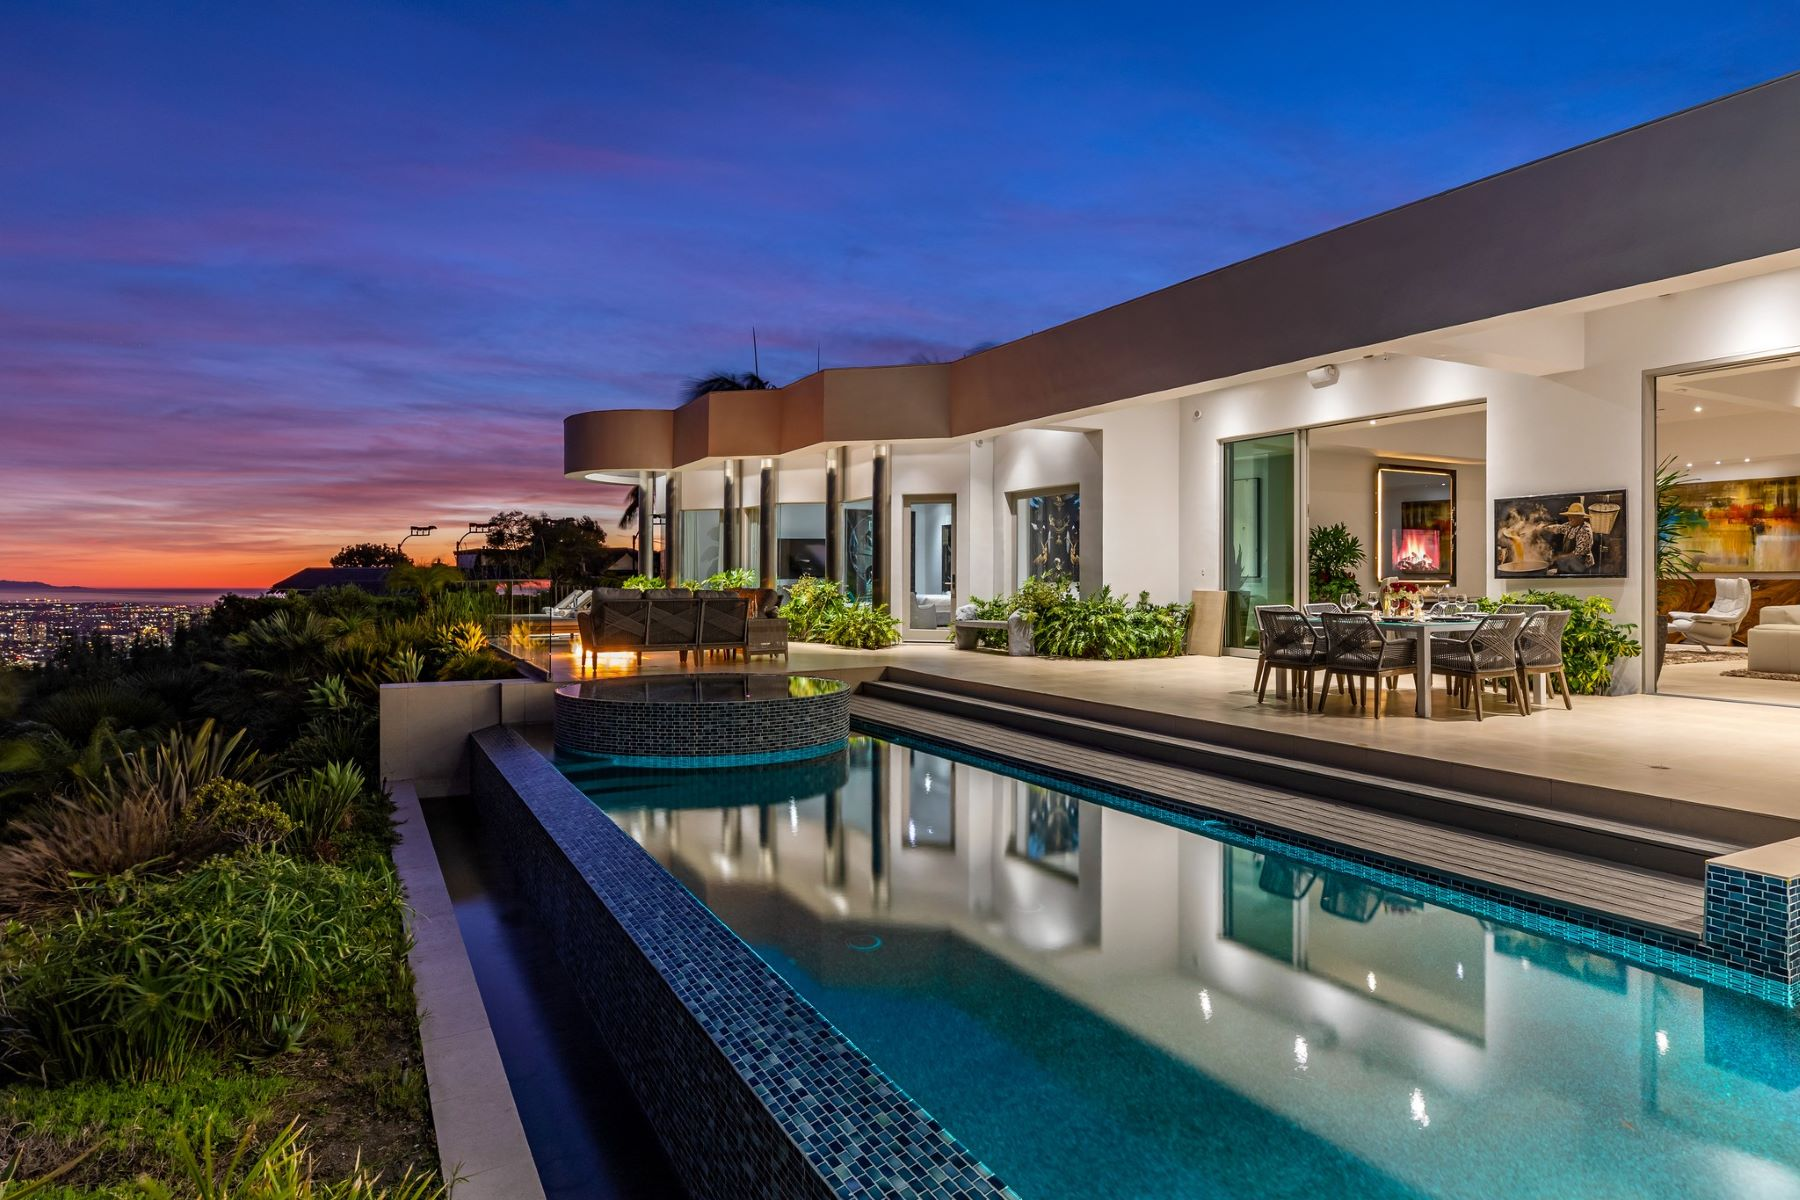 Single Family Homes for Sale at 440 Martin Lane Beverly Hills, California 90210 United States